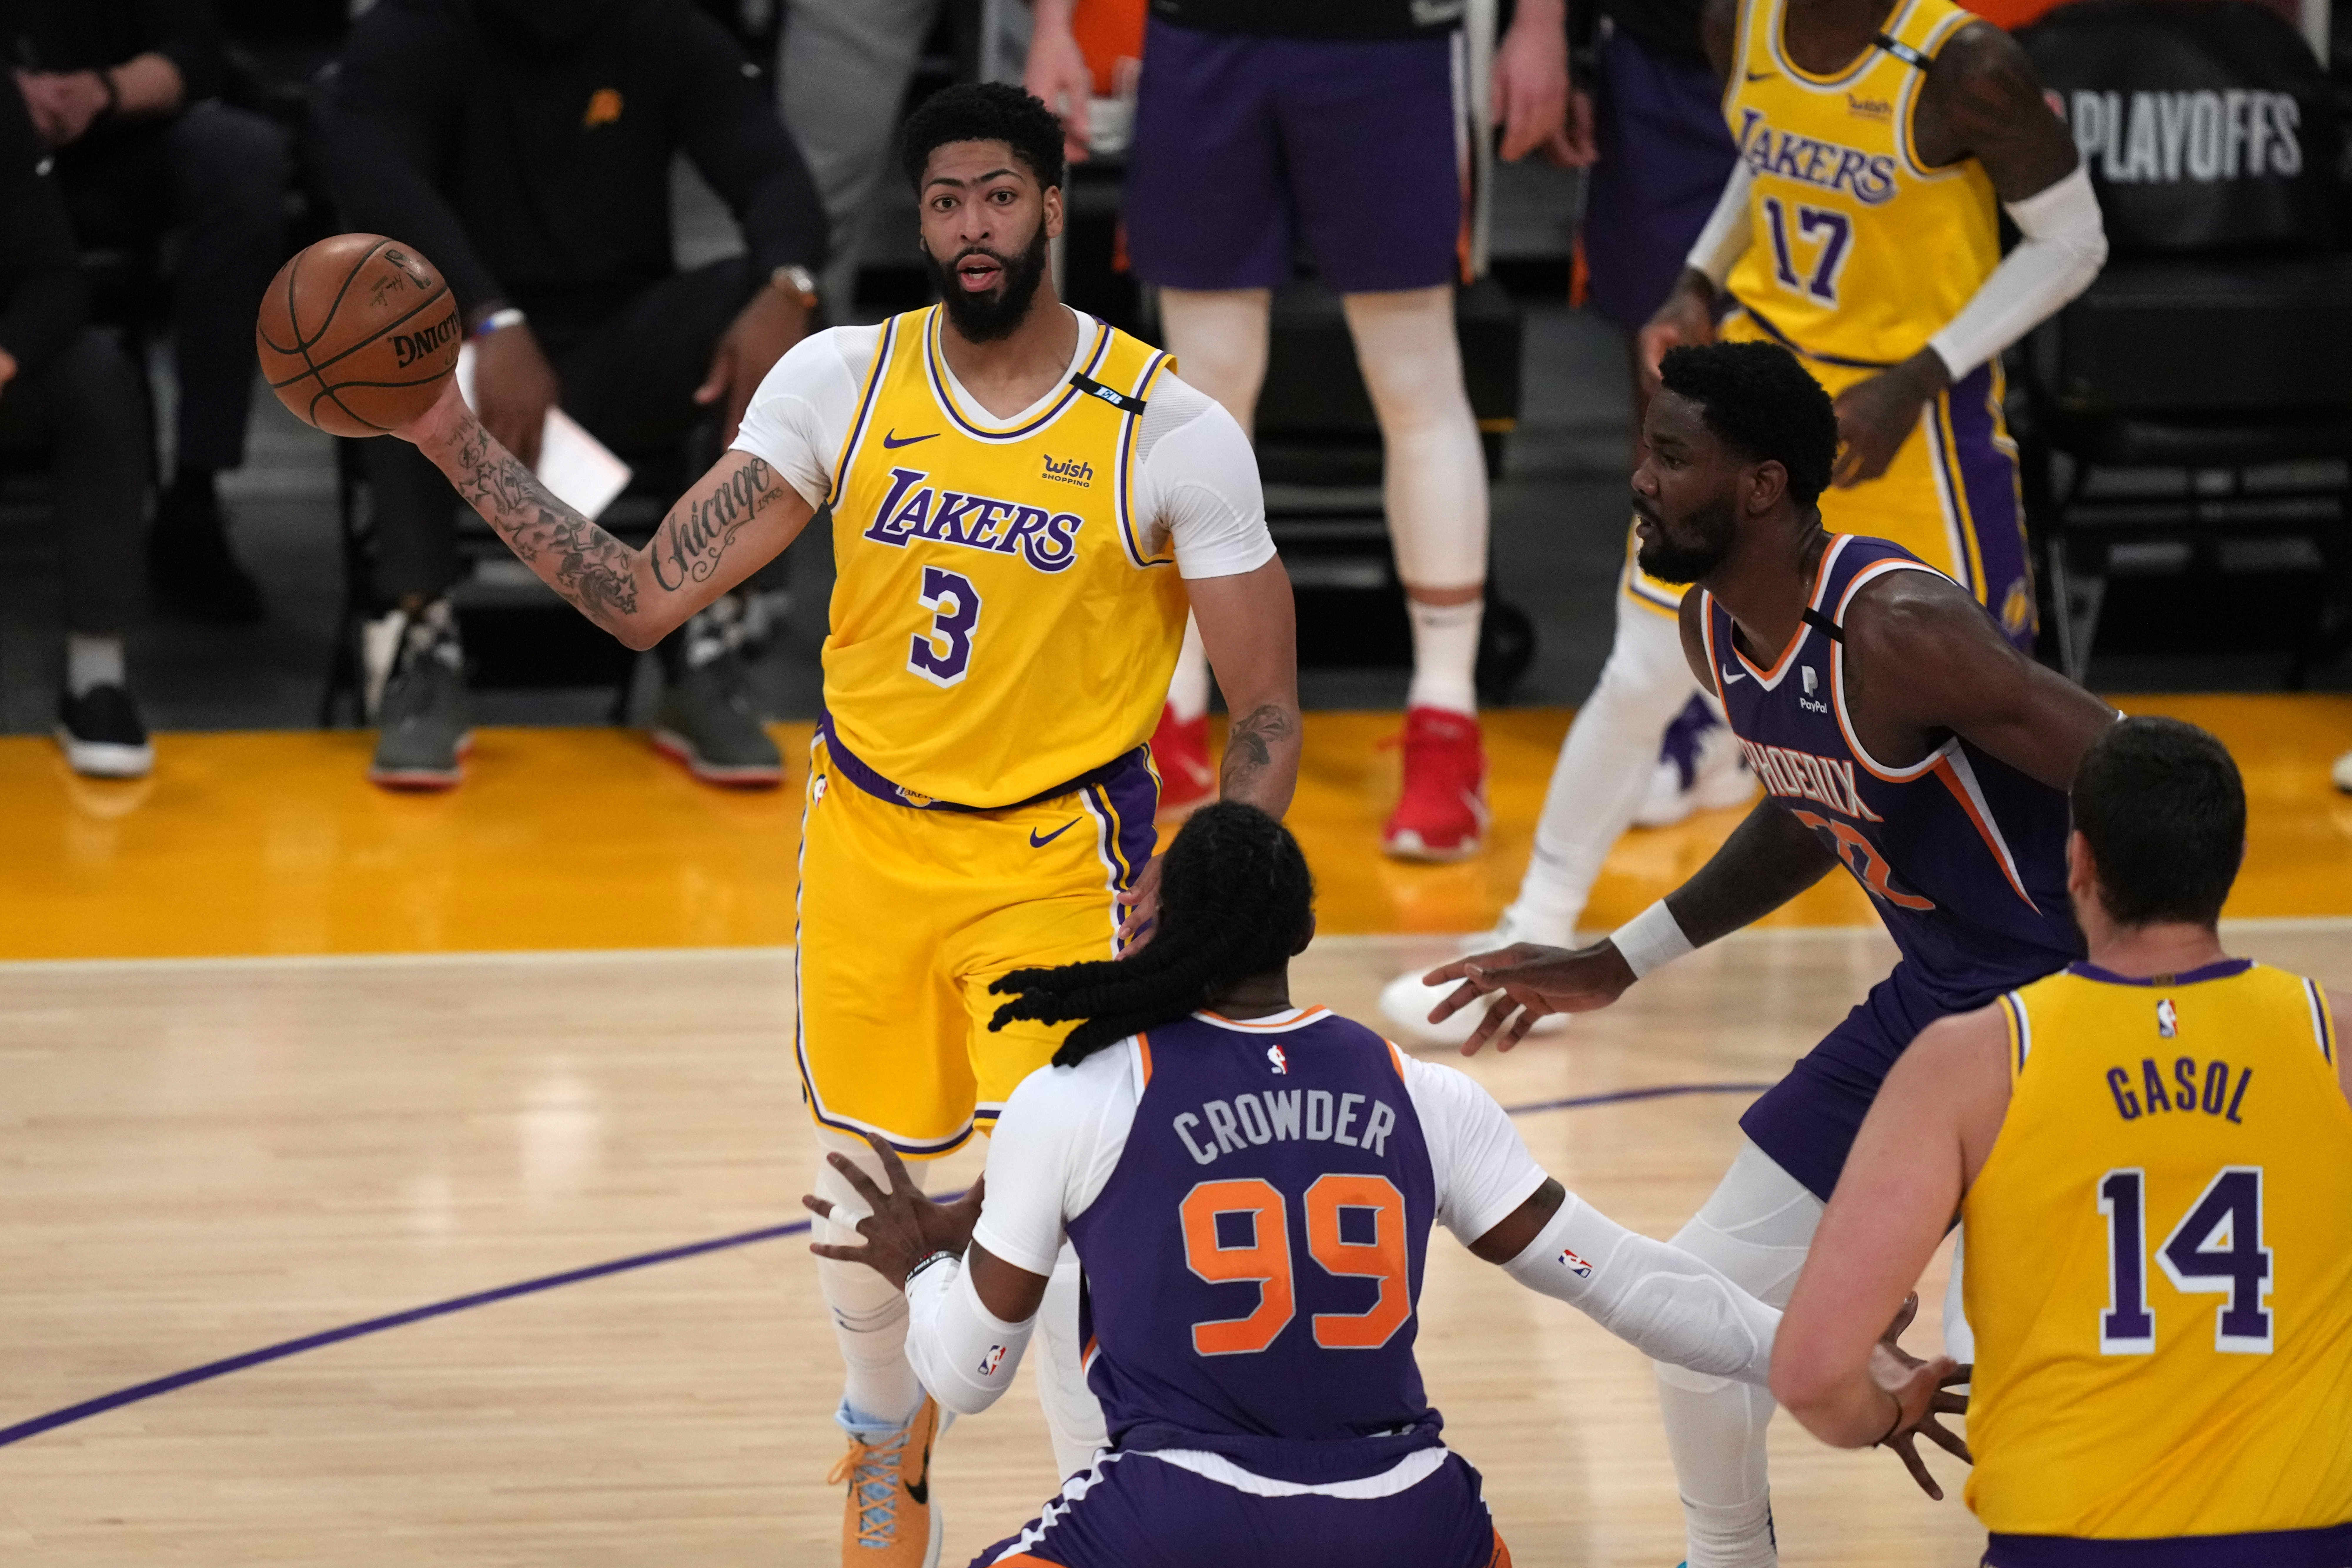 OPINION: Lakers' Anthony Davis on injury tag: 'I don't have to prove nothing to anyone'